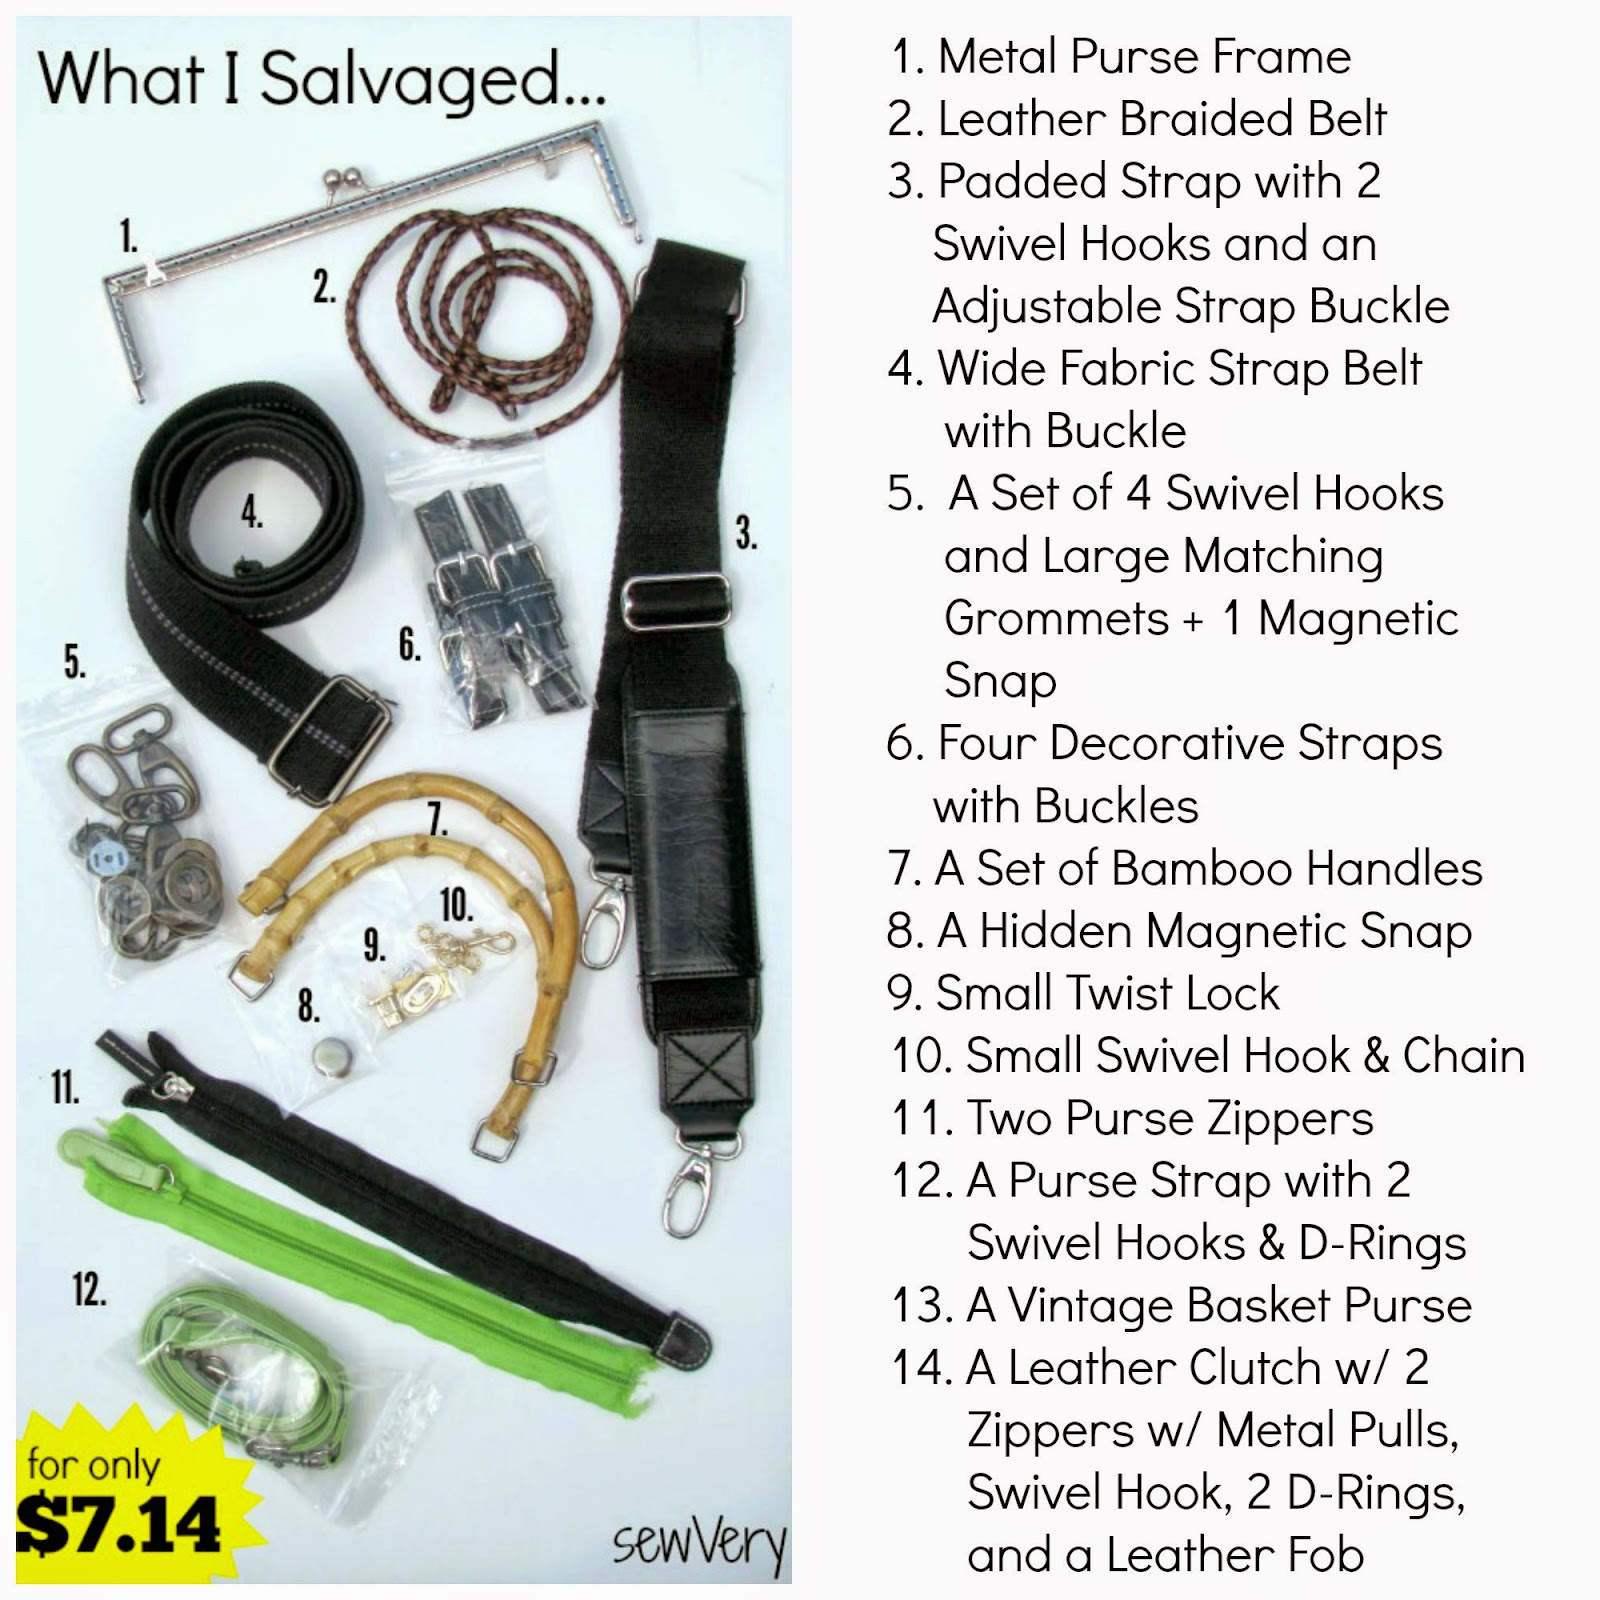 Salvaging Purse Hardware with sewVery - Melly Sews